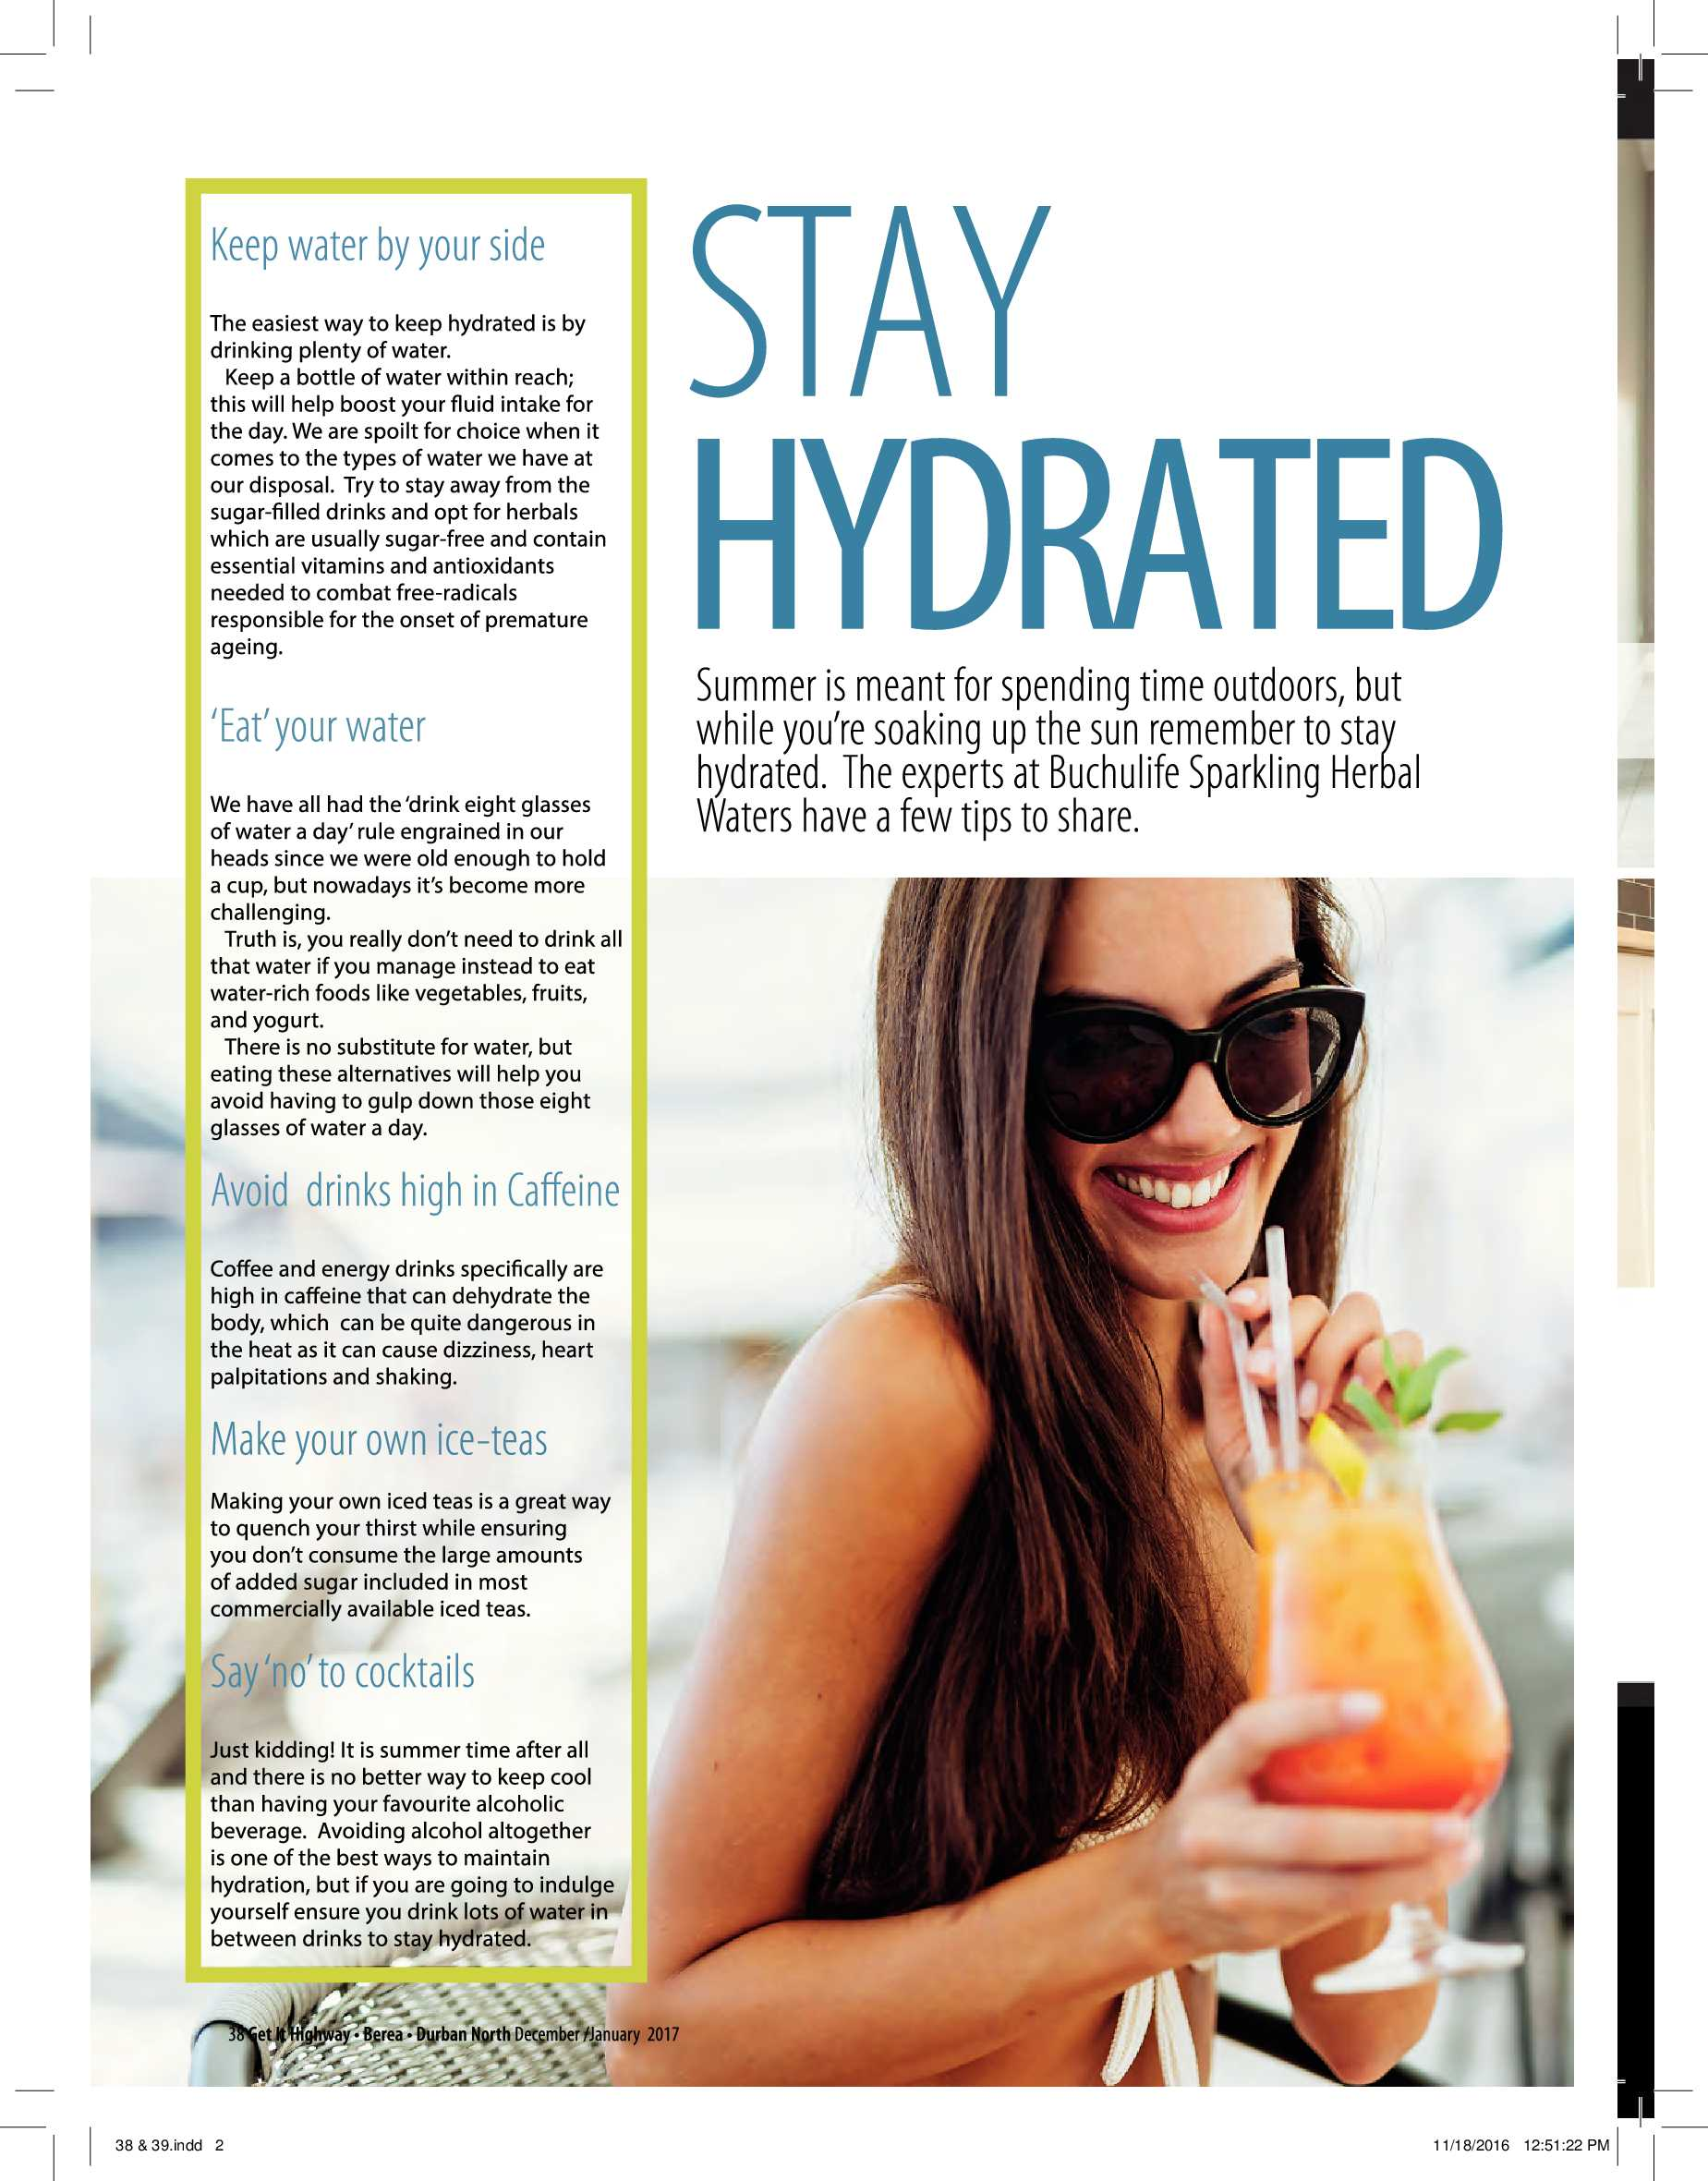 durban-get-it-magazine-december-2016-epapers-page-40